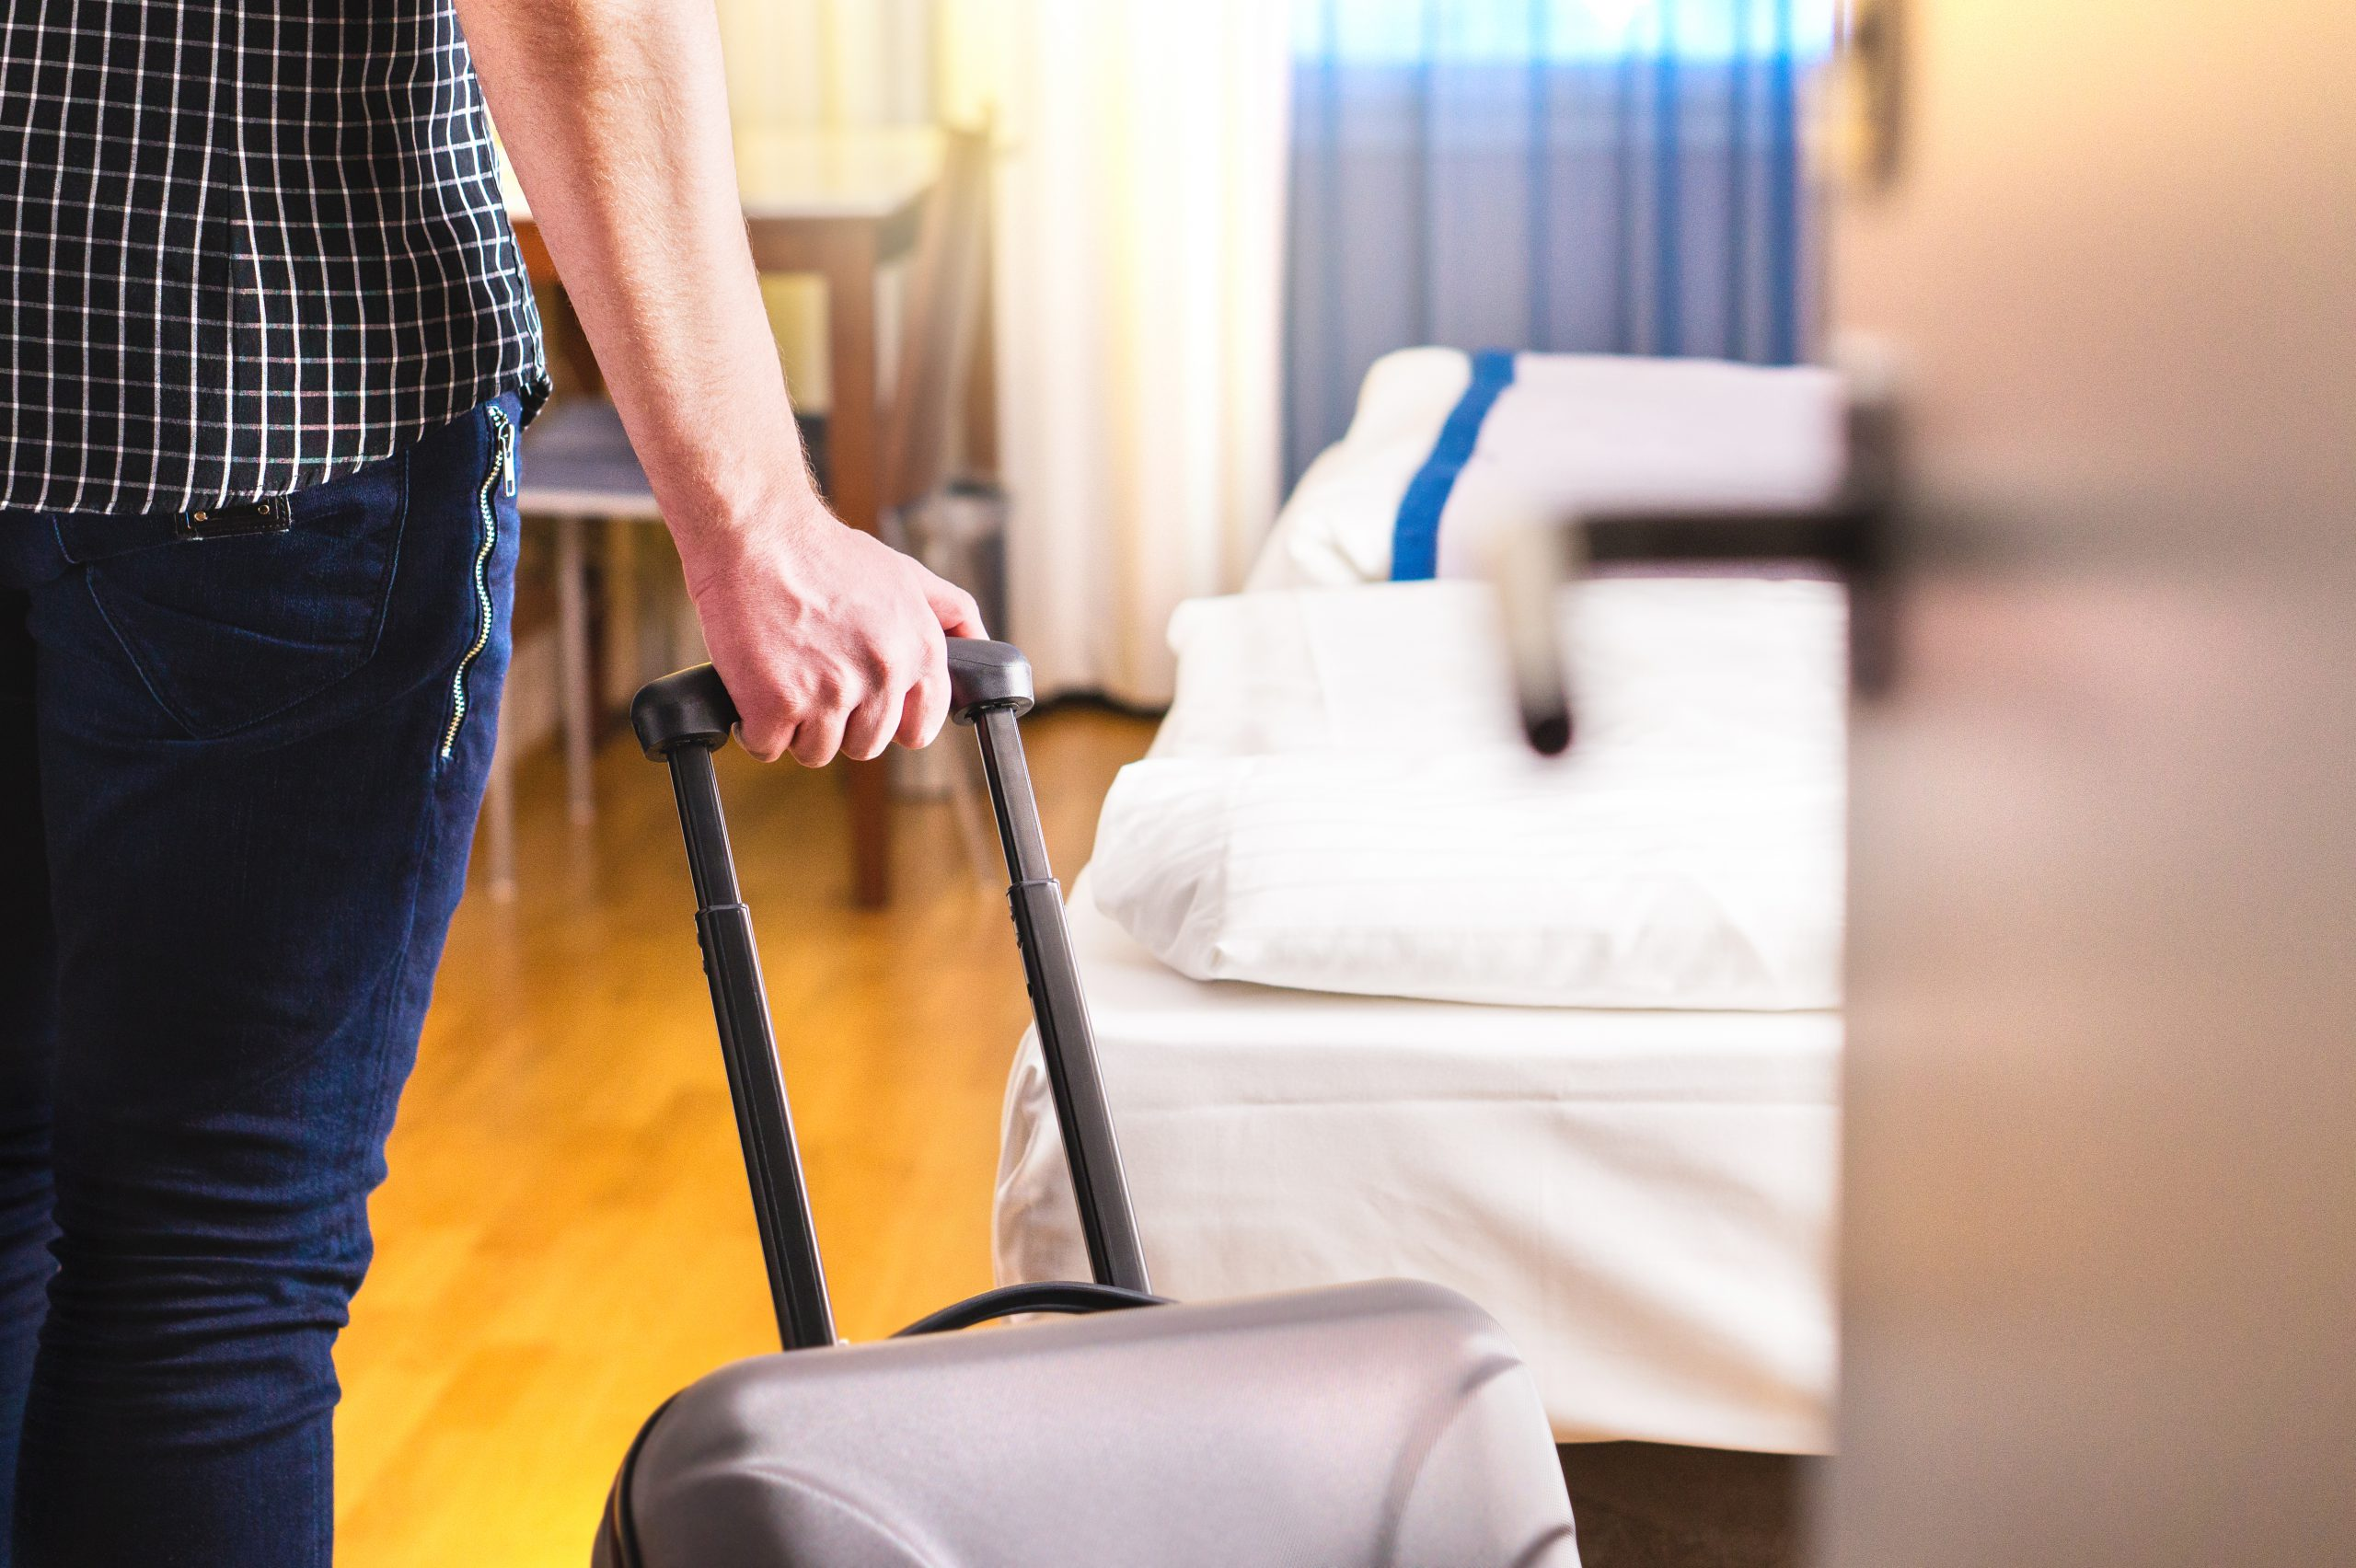 Man pulling suitcase and entering hotel room. Traveler going in to room or walking inside motel with luggage. Emergency lodging apartment rental